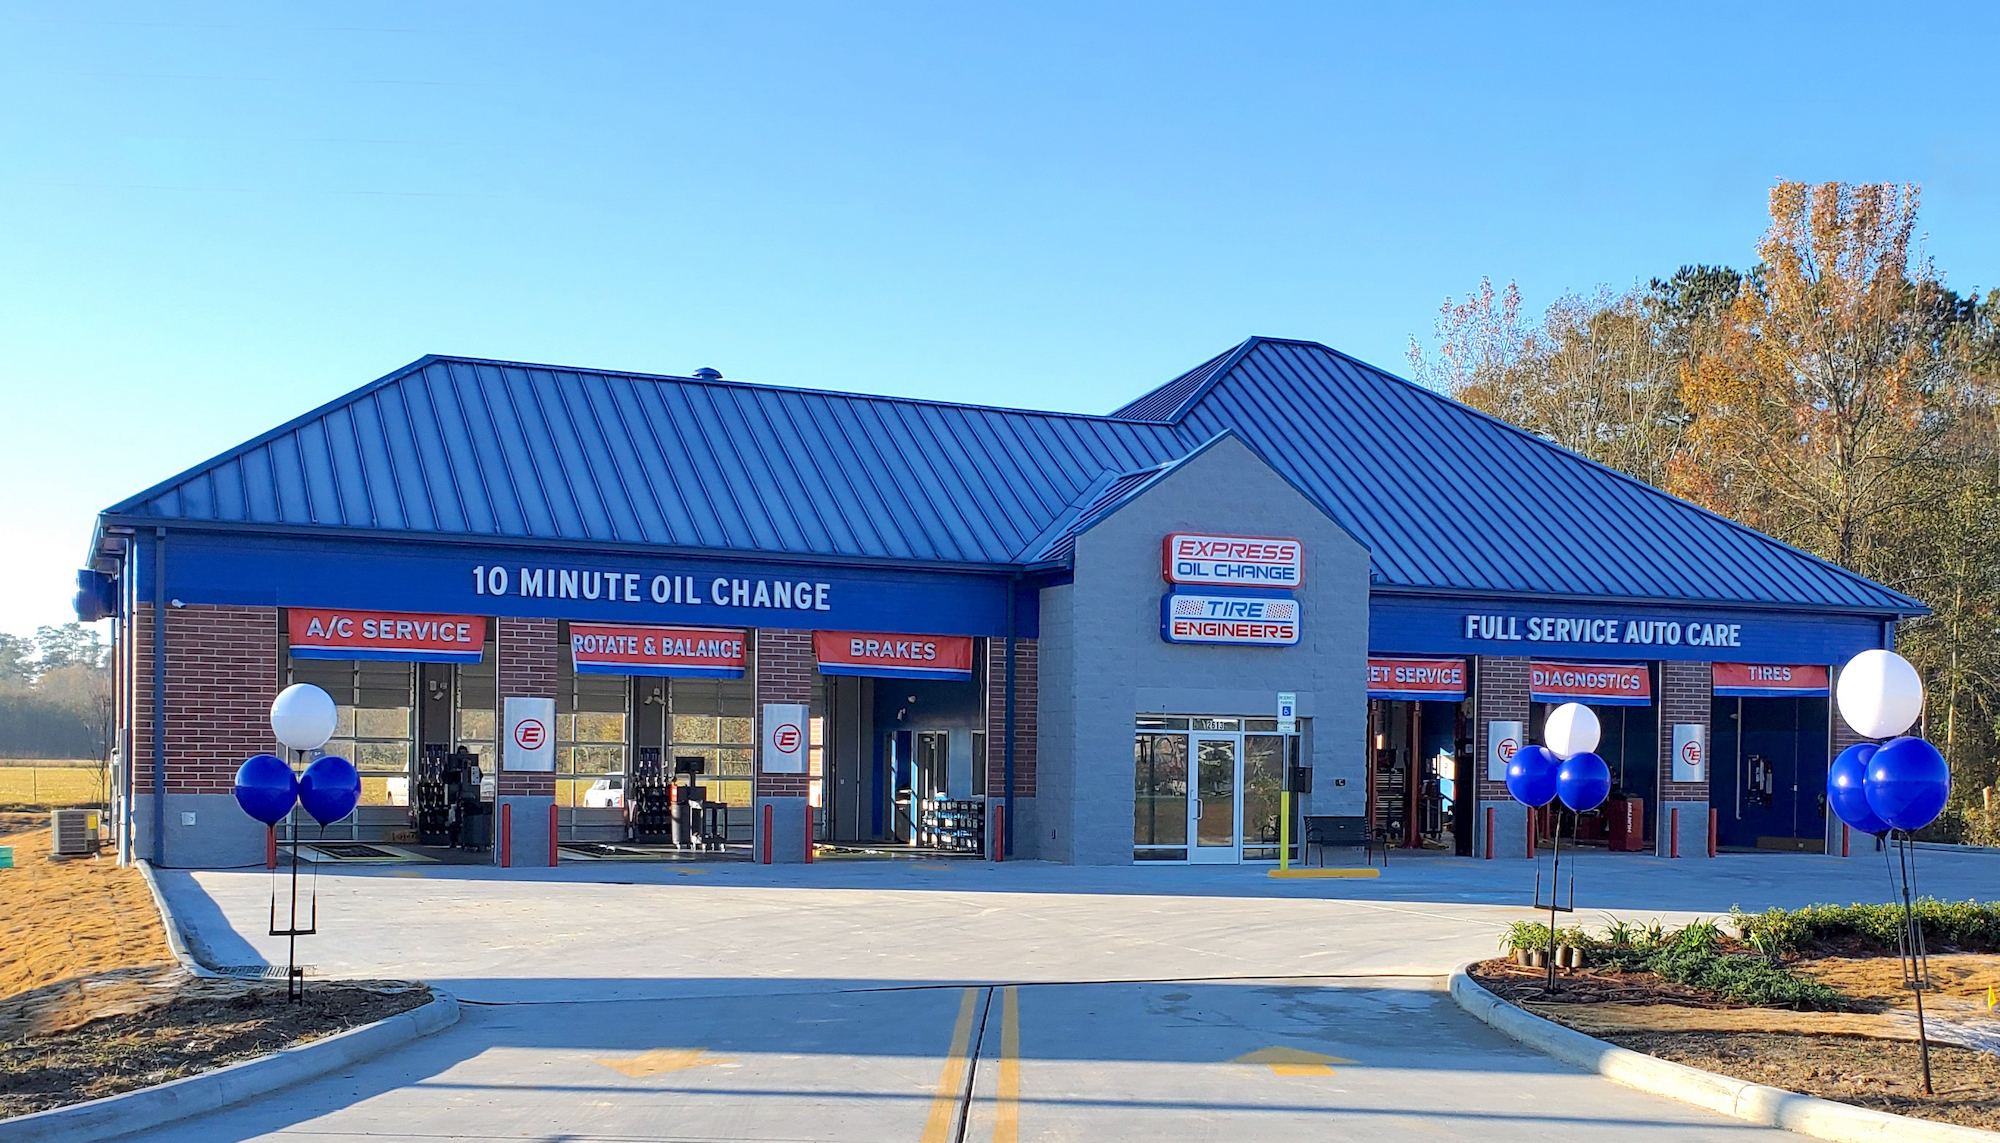 Express Oil Change & Tire Engineers at Hammond, LA - West store